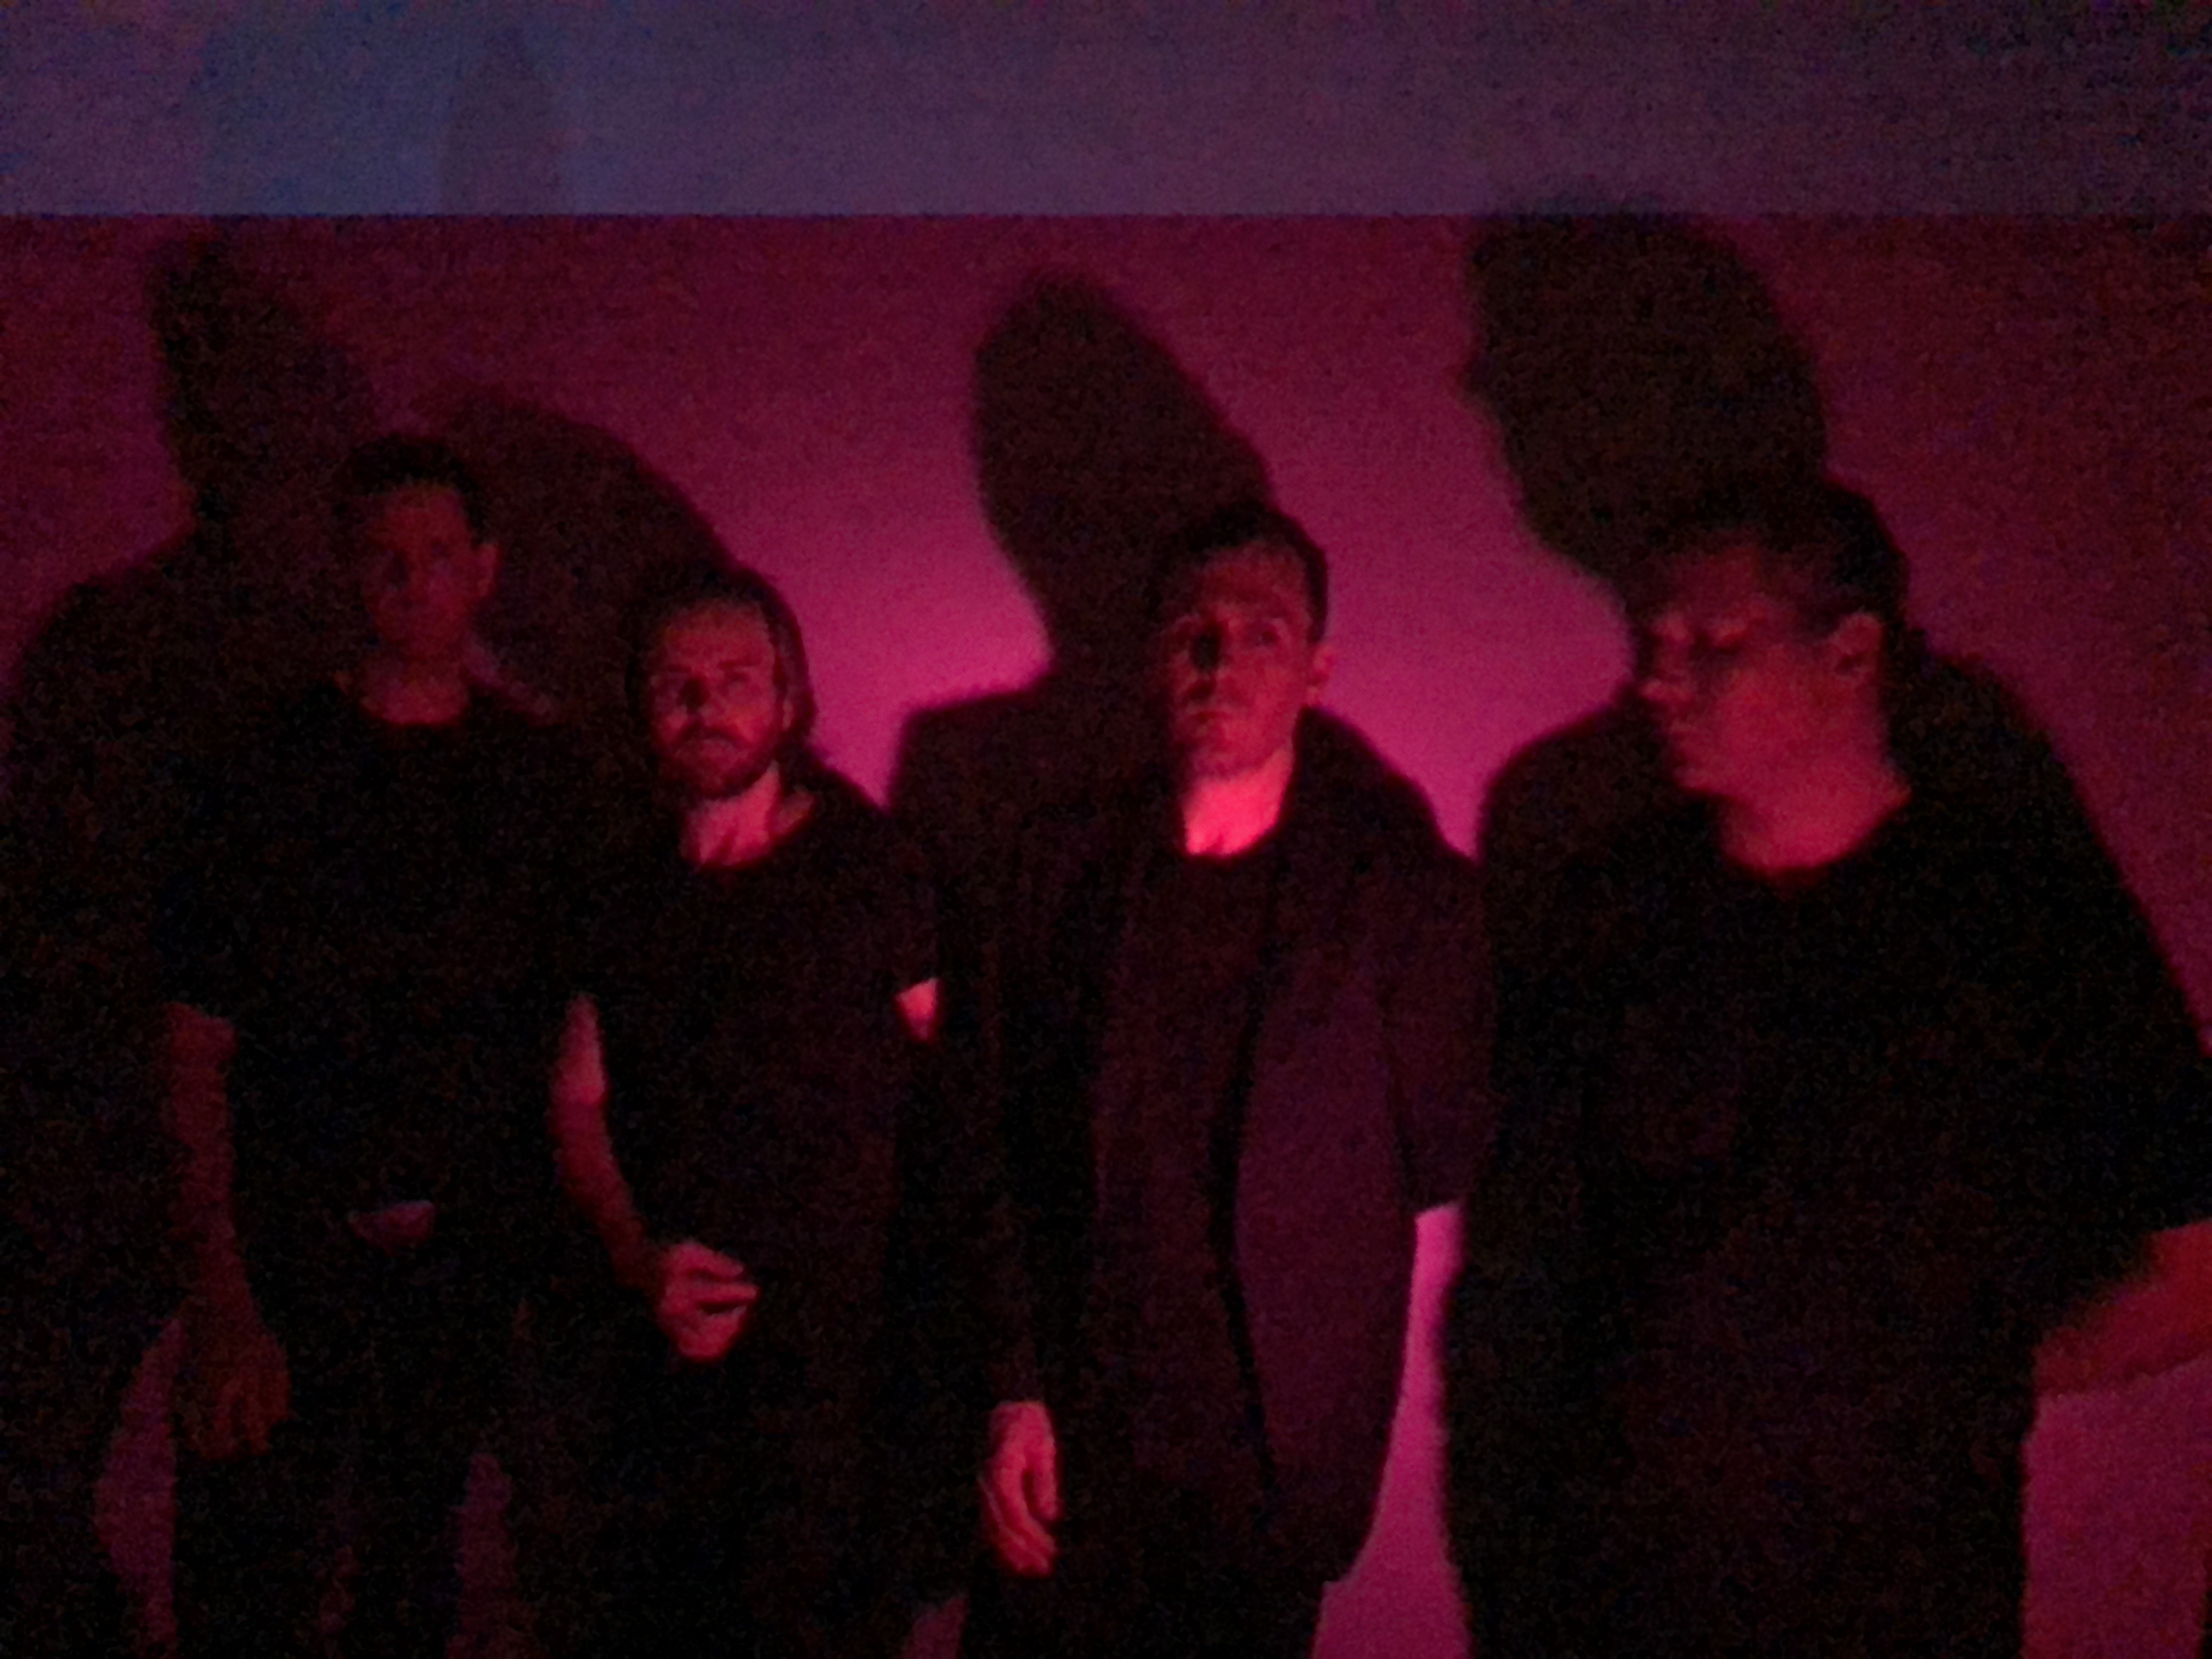 VAURA: Brooklyn-Based Experimental Ensemble Featuring Members Of Gorguts, Dysrhythmia, Azar Swan, Kayo Dot, And Tombs To Release Sables Full-Length This April Via Profound Lore; New Track Streaming